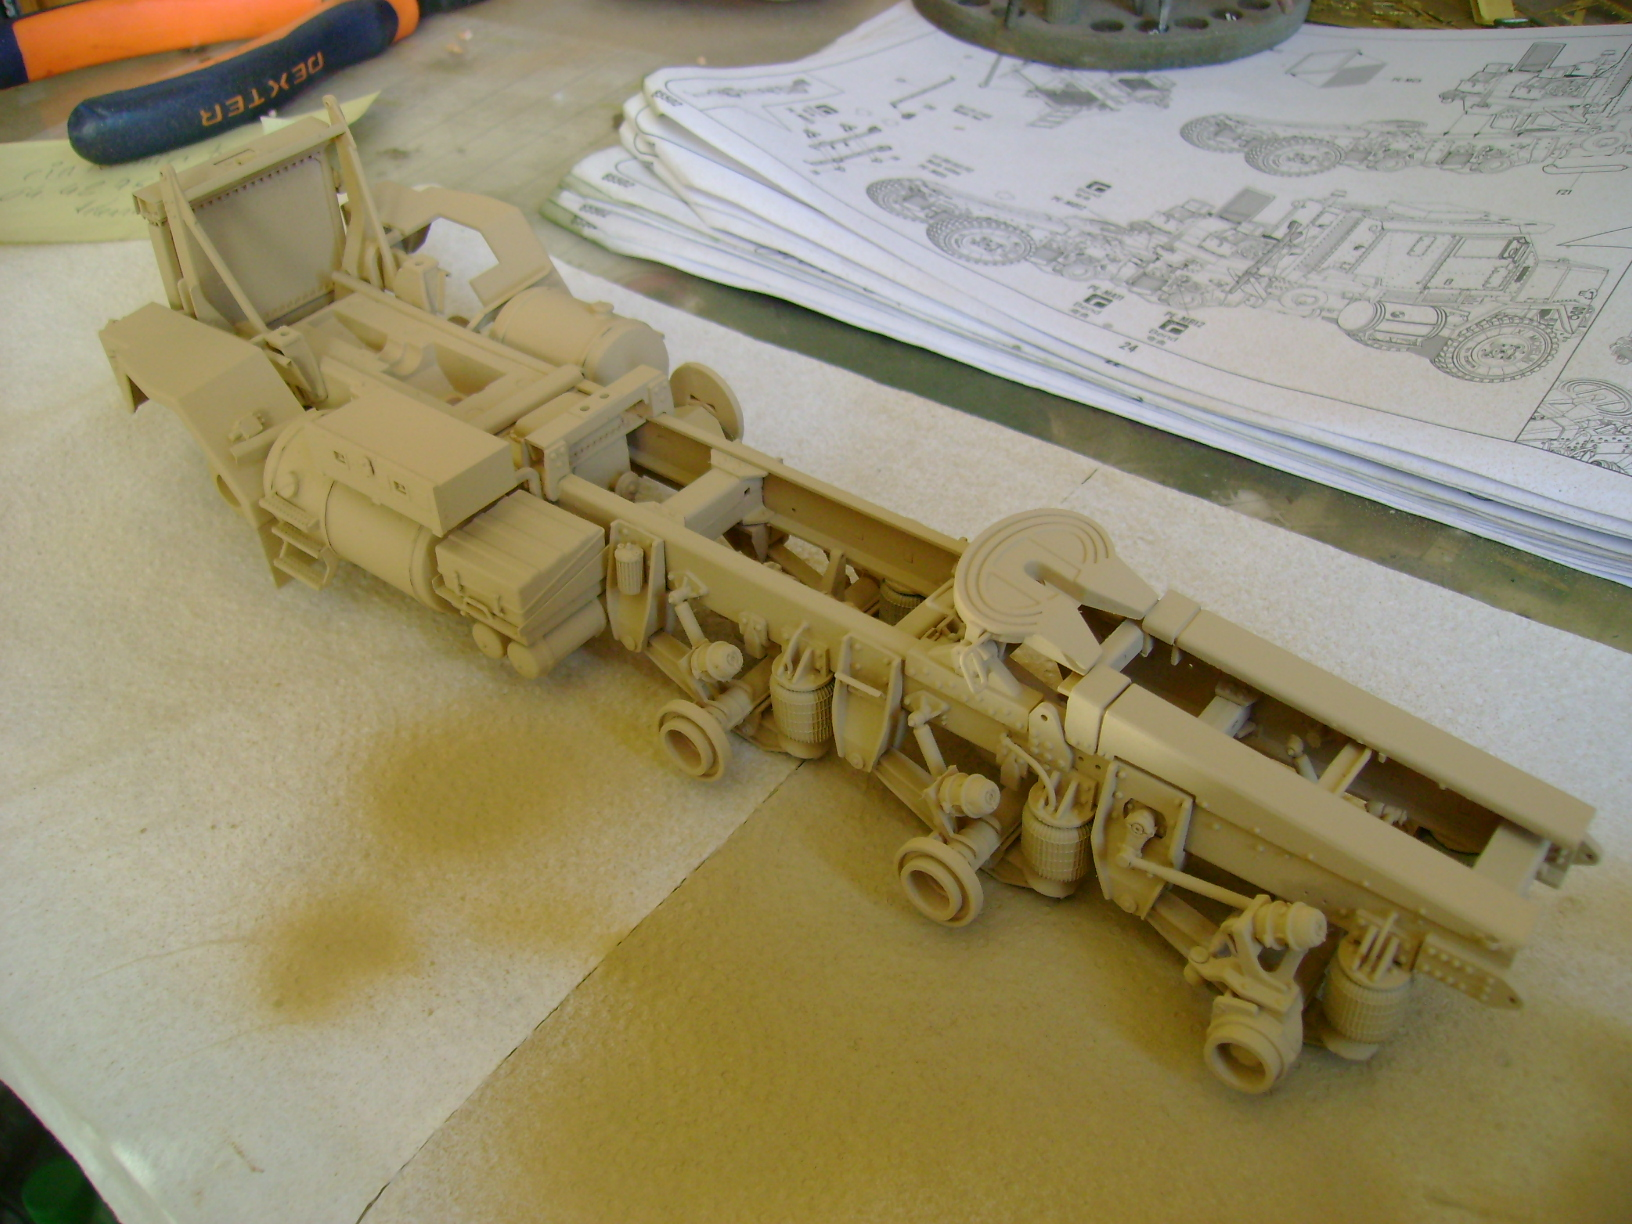 M1070 Truck Tractor & M1000 Semi-Trailer By T-bird!!!!! 1/35 Hobby Boss.Up du01/02.... - Page 3 107gc